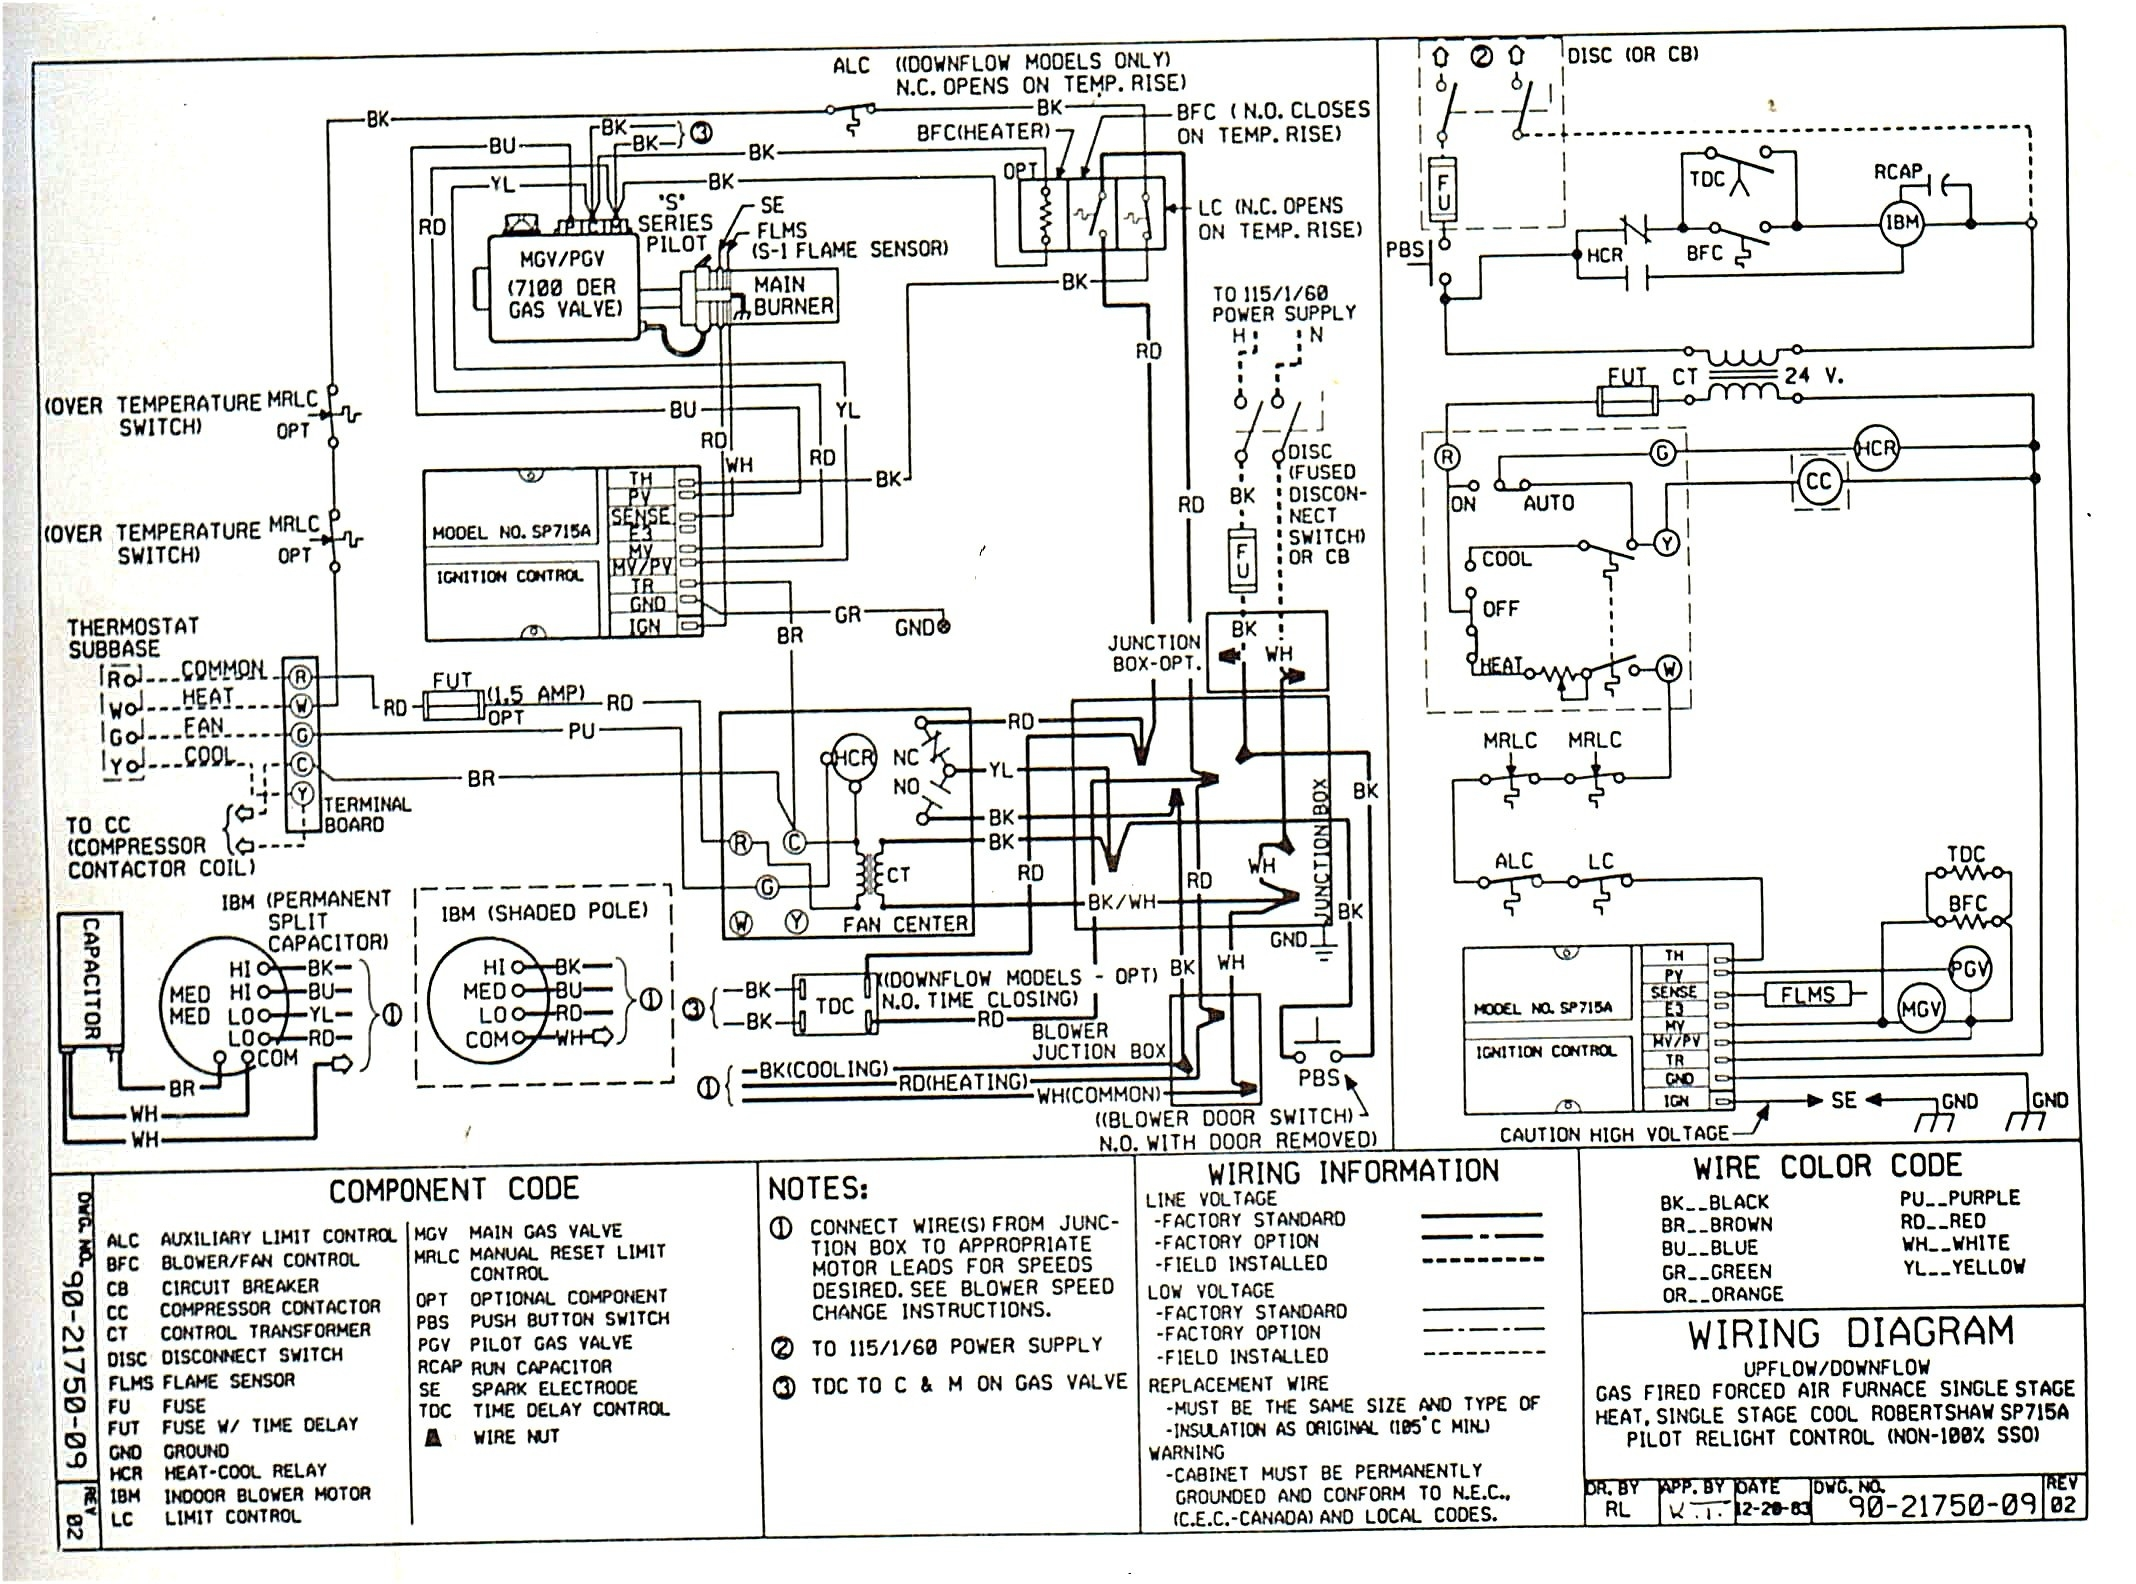 Carrier Furnace Schematic